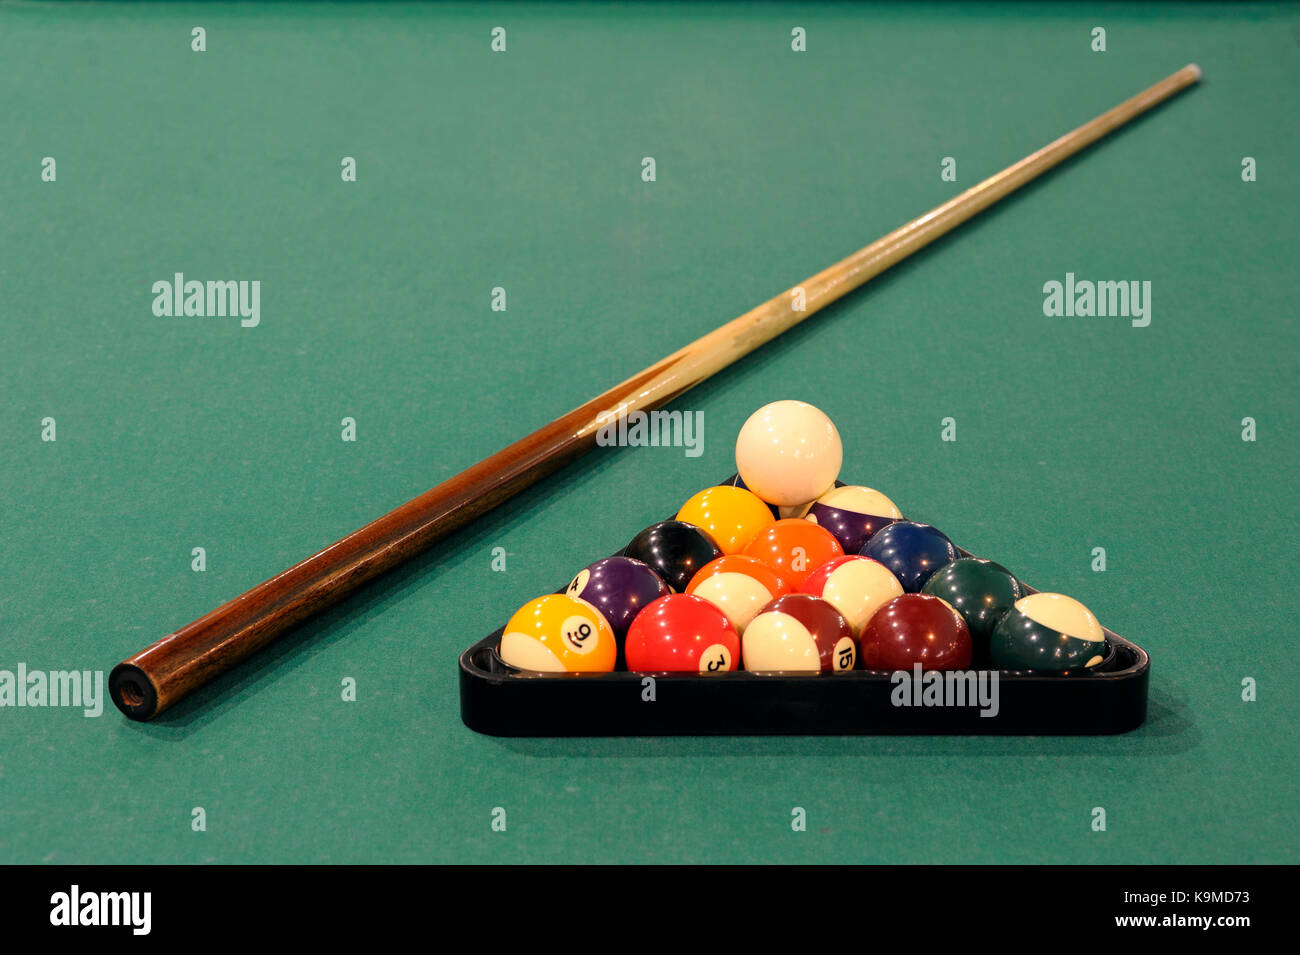 A cue stick and balls on a pool table - Stock Image